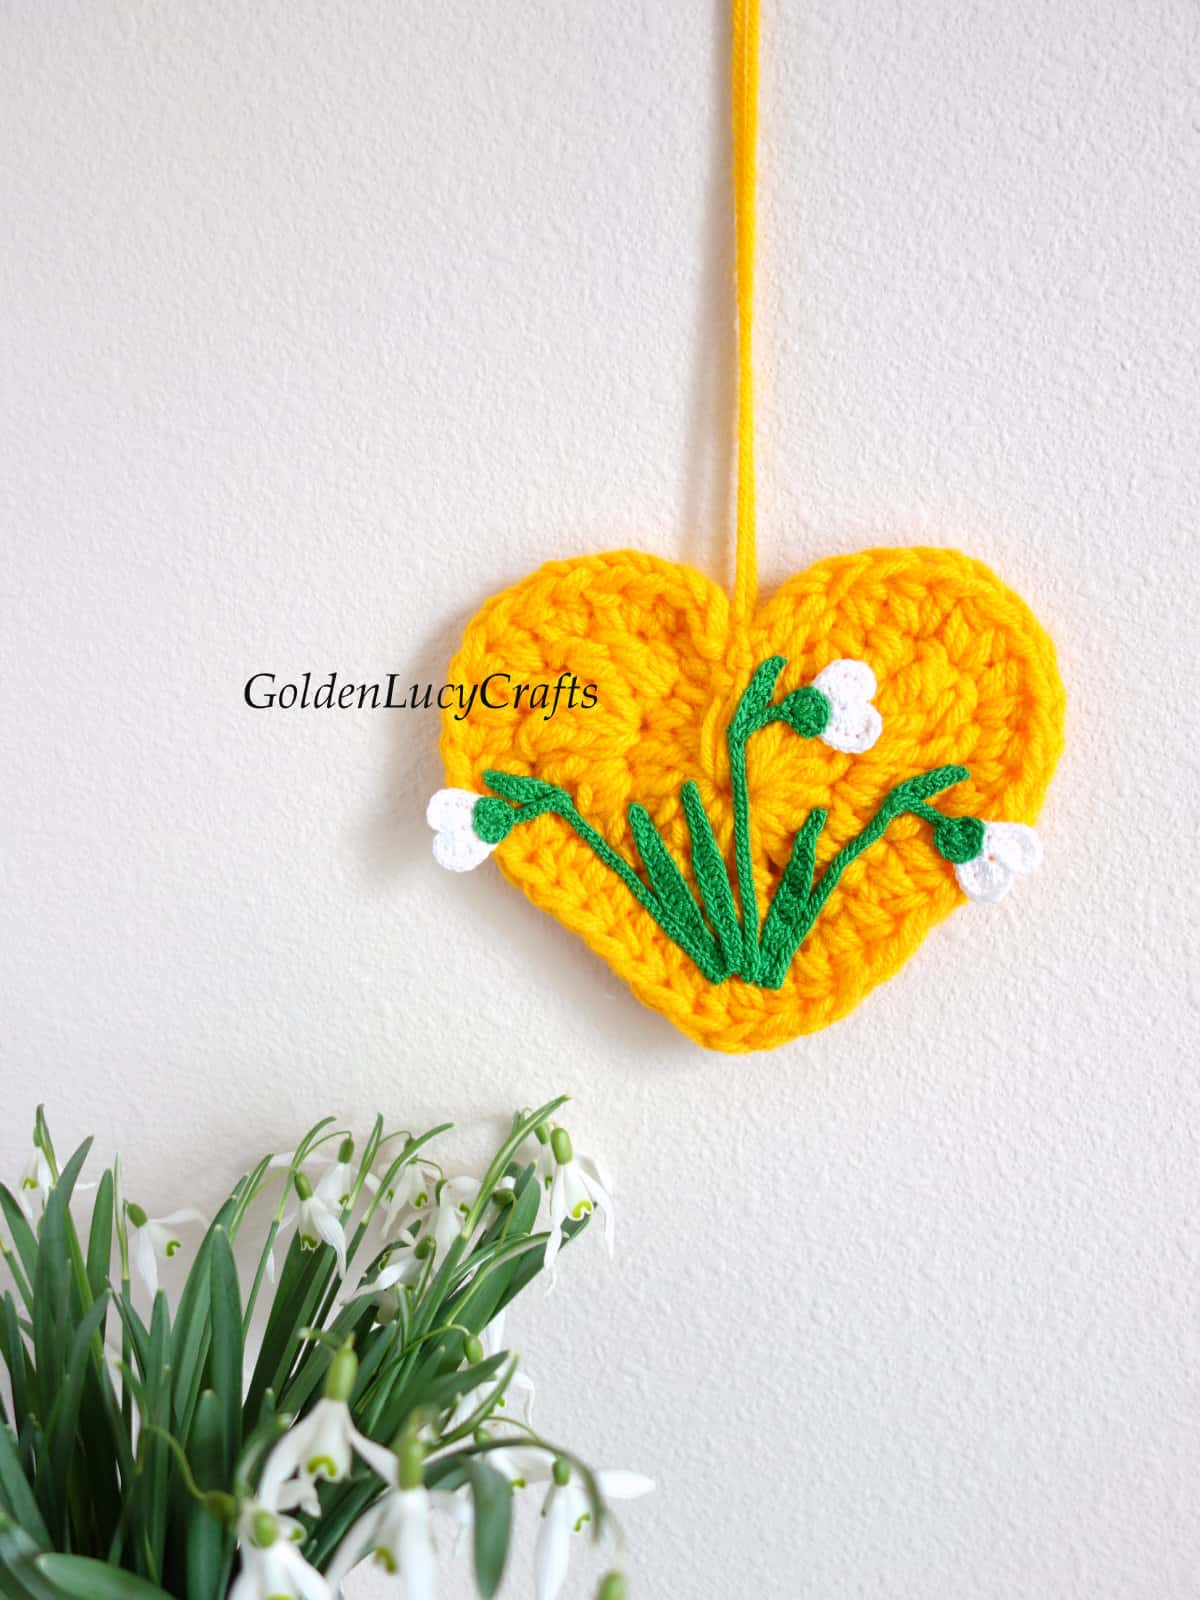 Crocheted yellow heart with crocheted snowdrops on it wall decor, real snowdrops in a vase.